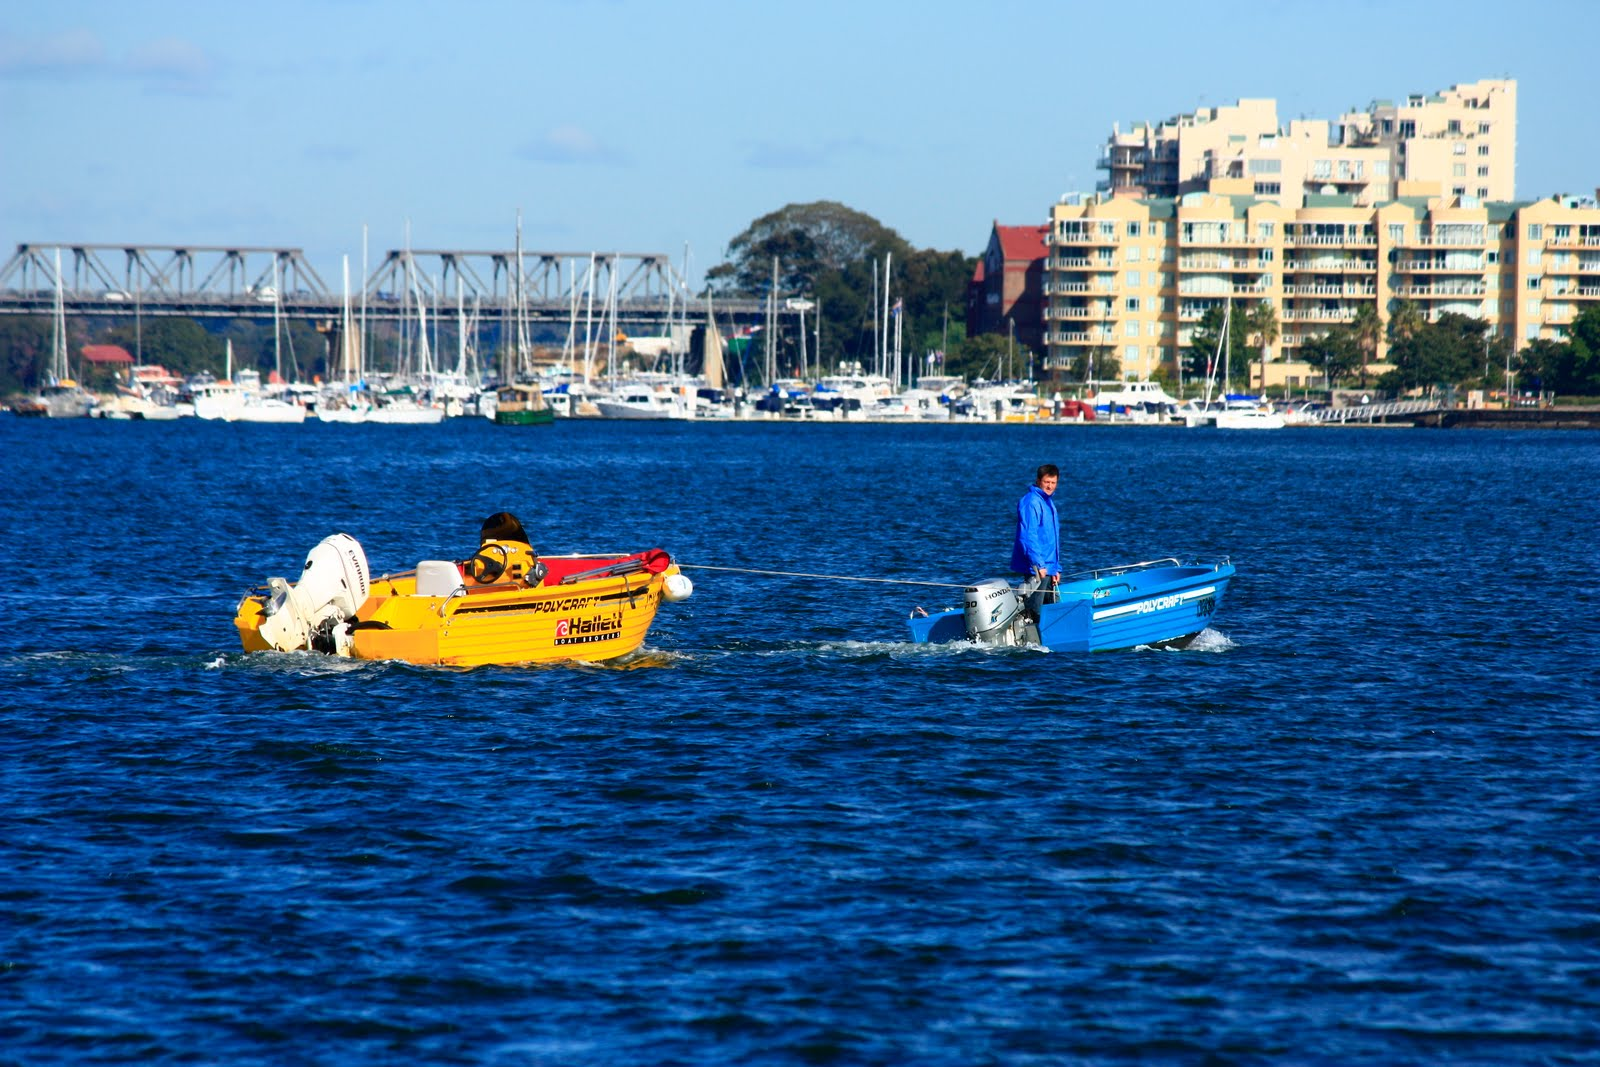 birkenhead point sydney how to get there